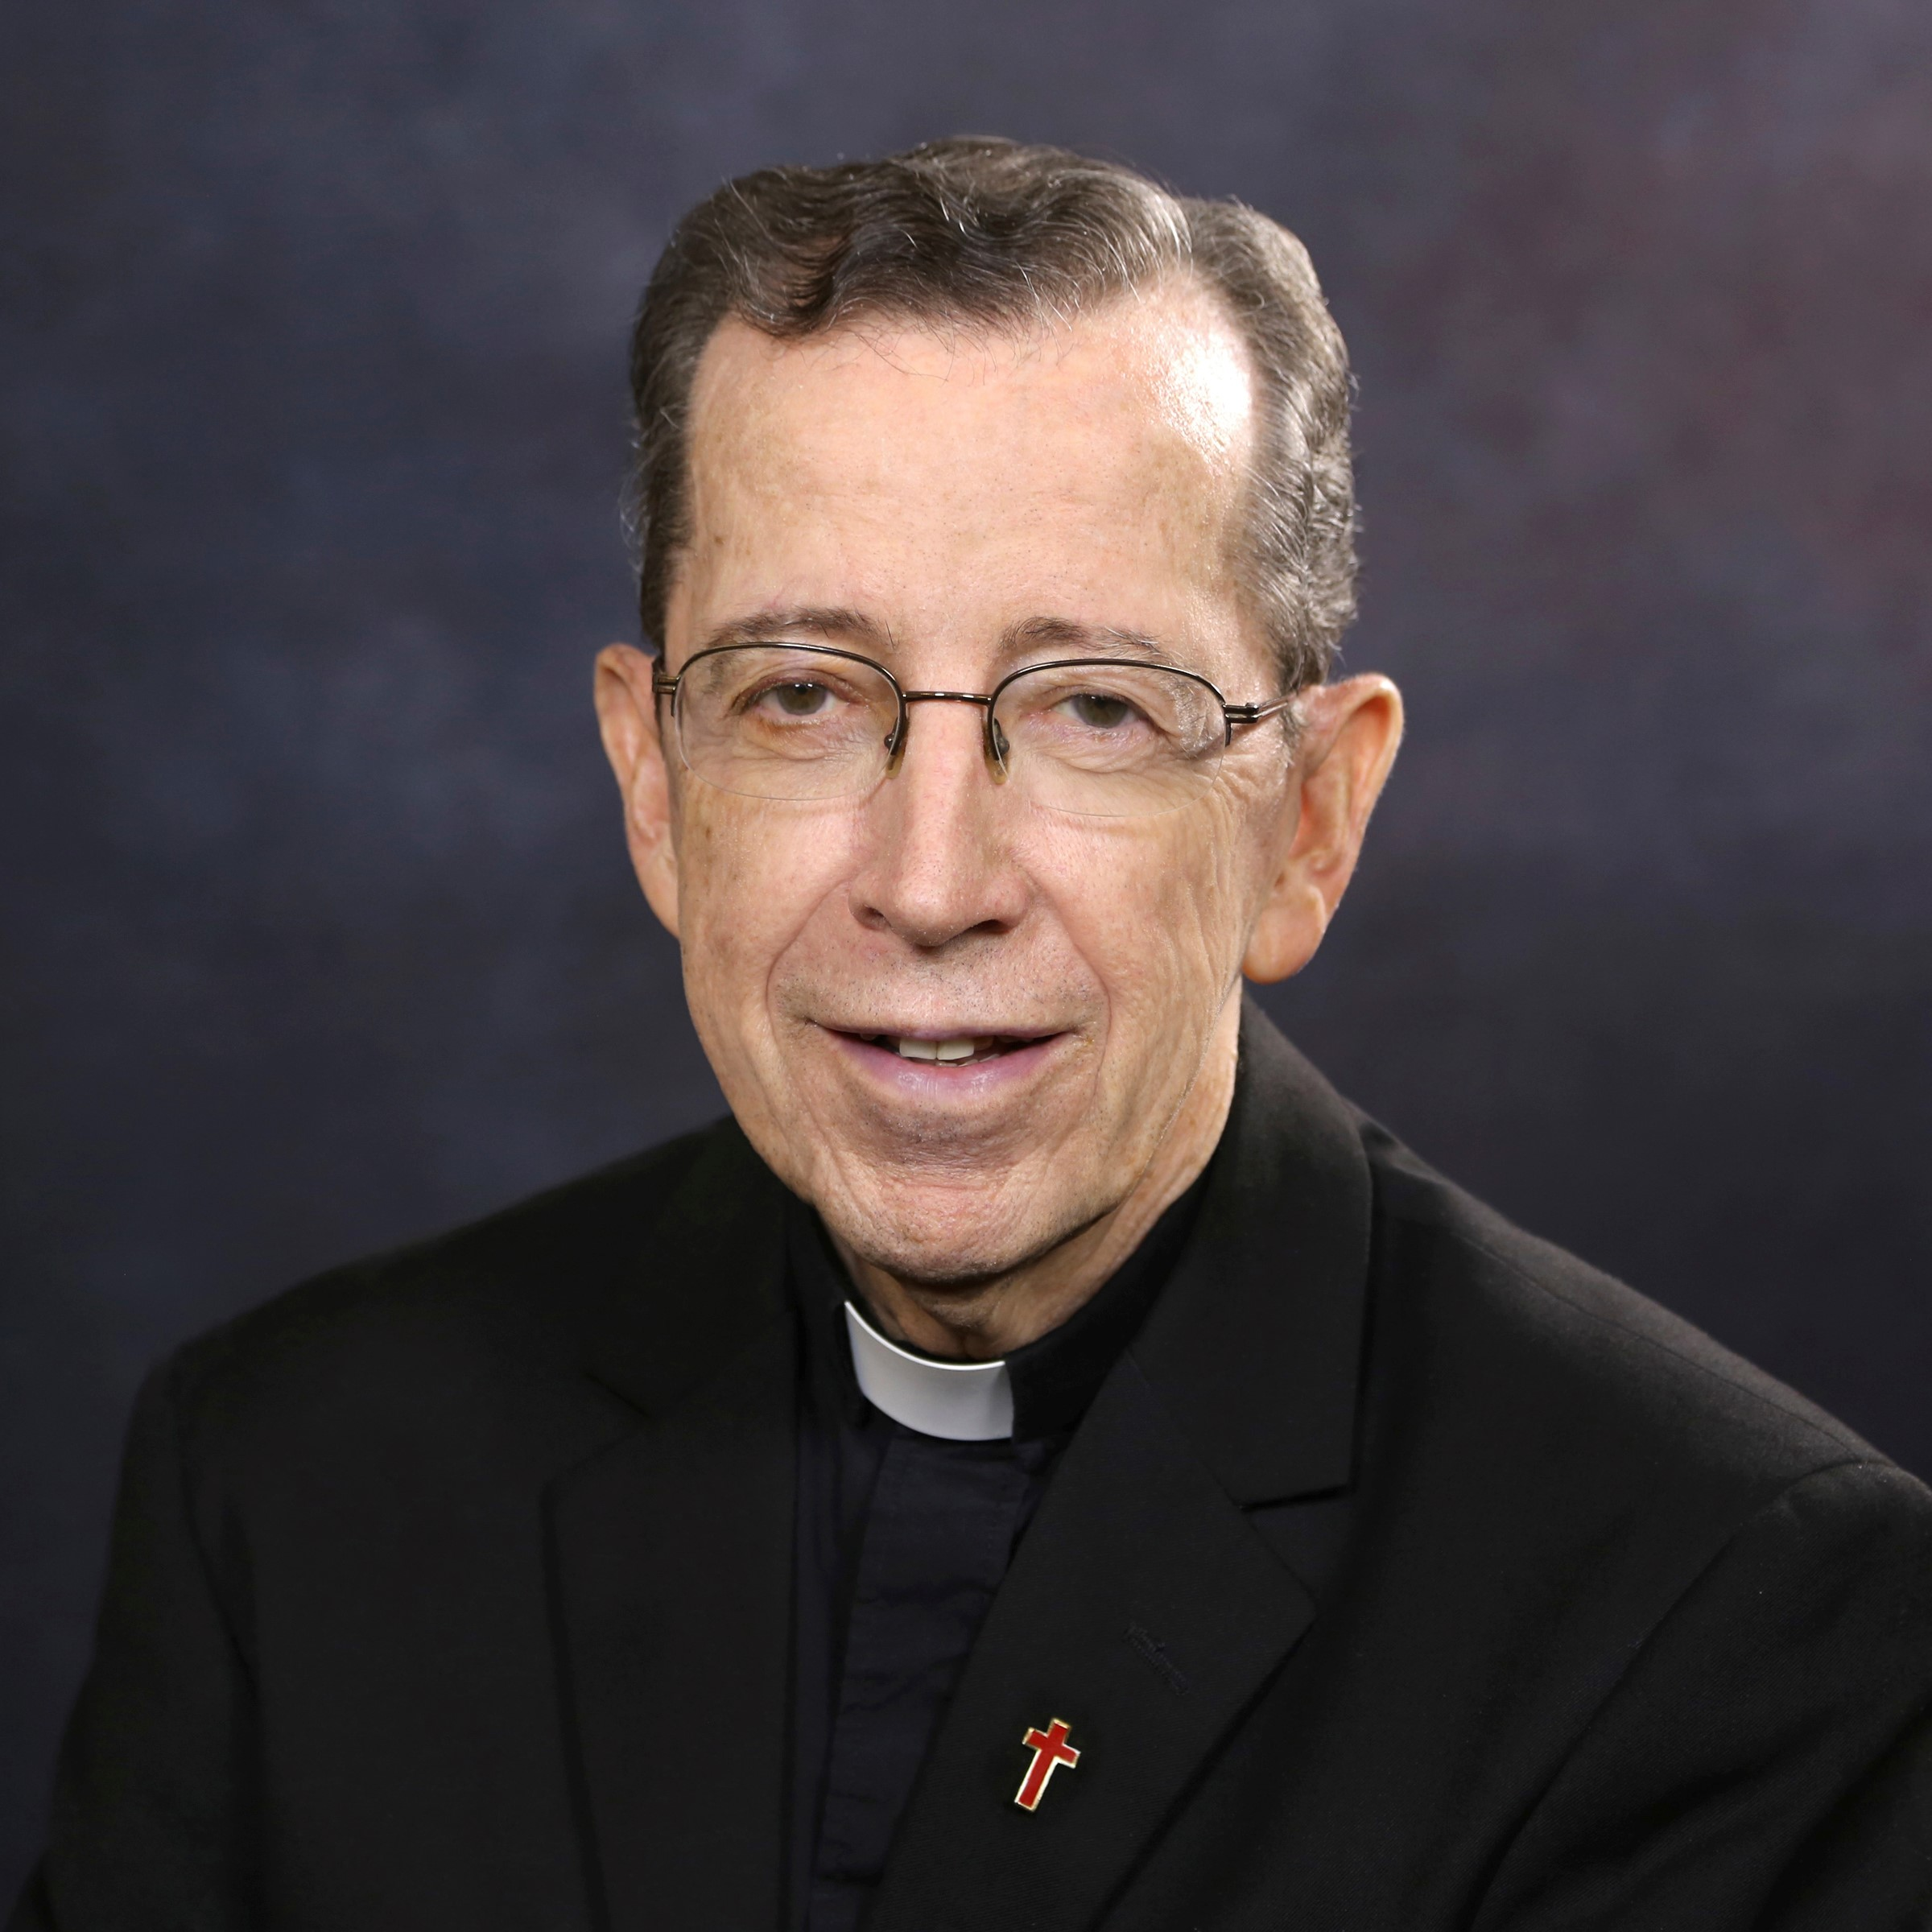 Fr. O'Donnell